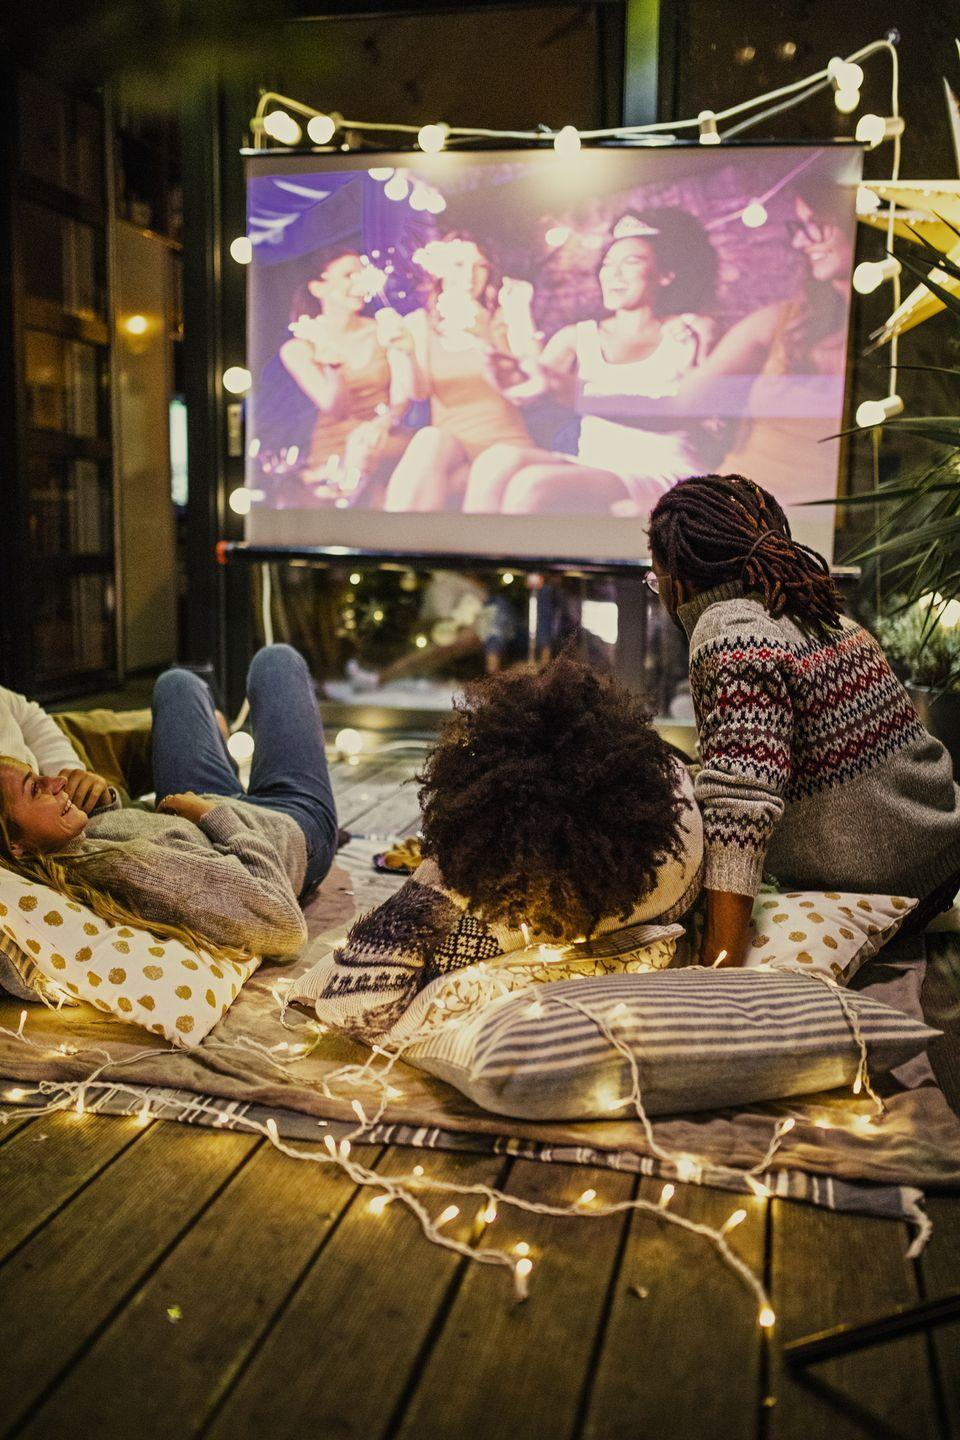 "<p>Movie nights are a simple pleasure that often get overlooked. Make this one even more memorable by hosting a Blockbuster-esque get-together in your backyard—complete with popcorn and other snacks, of course. </p><p><a class=""link rapid-noclick-resp"" href=""https://go.redirectingat.com?id=74968X1596630&url=https%3A%2F%2Fwww.walmart.com%2Fip%2FClassic-Striped-Popcorn-Boxes-Red-White-6-25-x-4in-10ct%2F32139653&sref=https%3A%2F%2Fwww.thepioneerwoman.com%2Fhome-lifestyle%2Fentertaining%2Fg34192298%2F50th-birthday-party-ideas%2F"" rel=""nofollow noopener"" target=""_blank"" data-ylk=""slk:SHOP POPCORN BOXES"">SHOP POPCORN BOXES</a></p>"